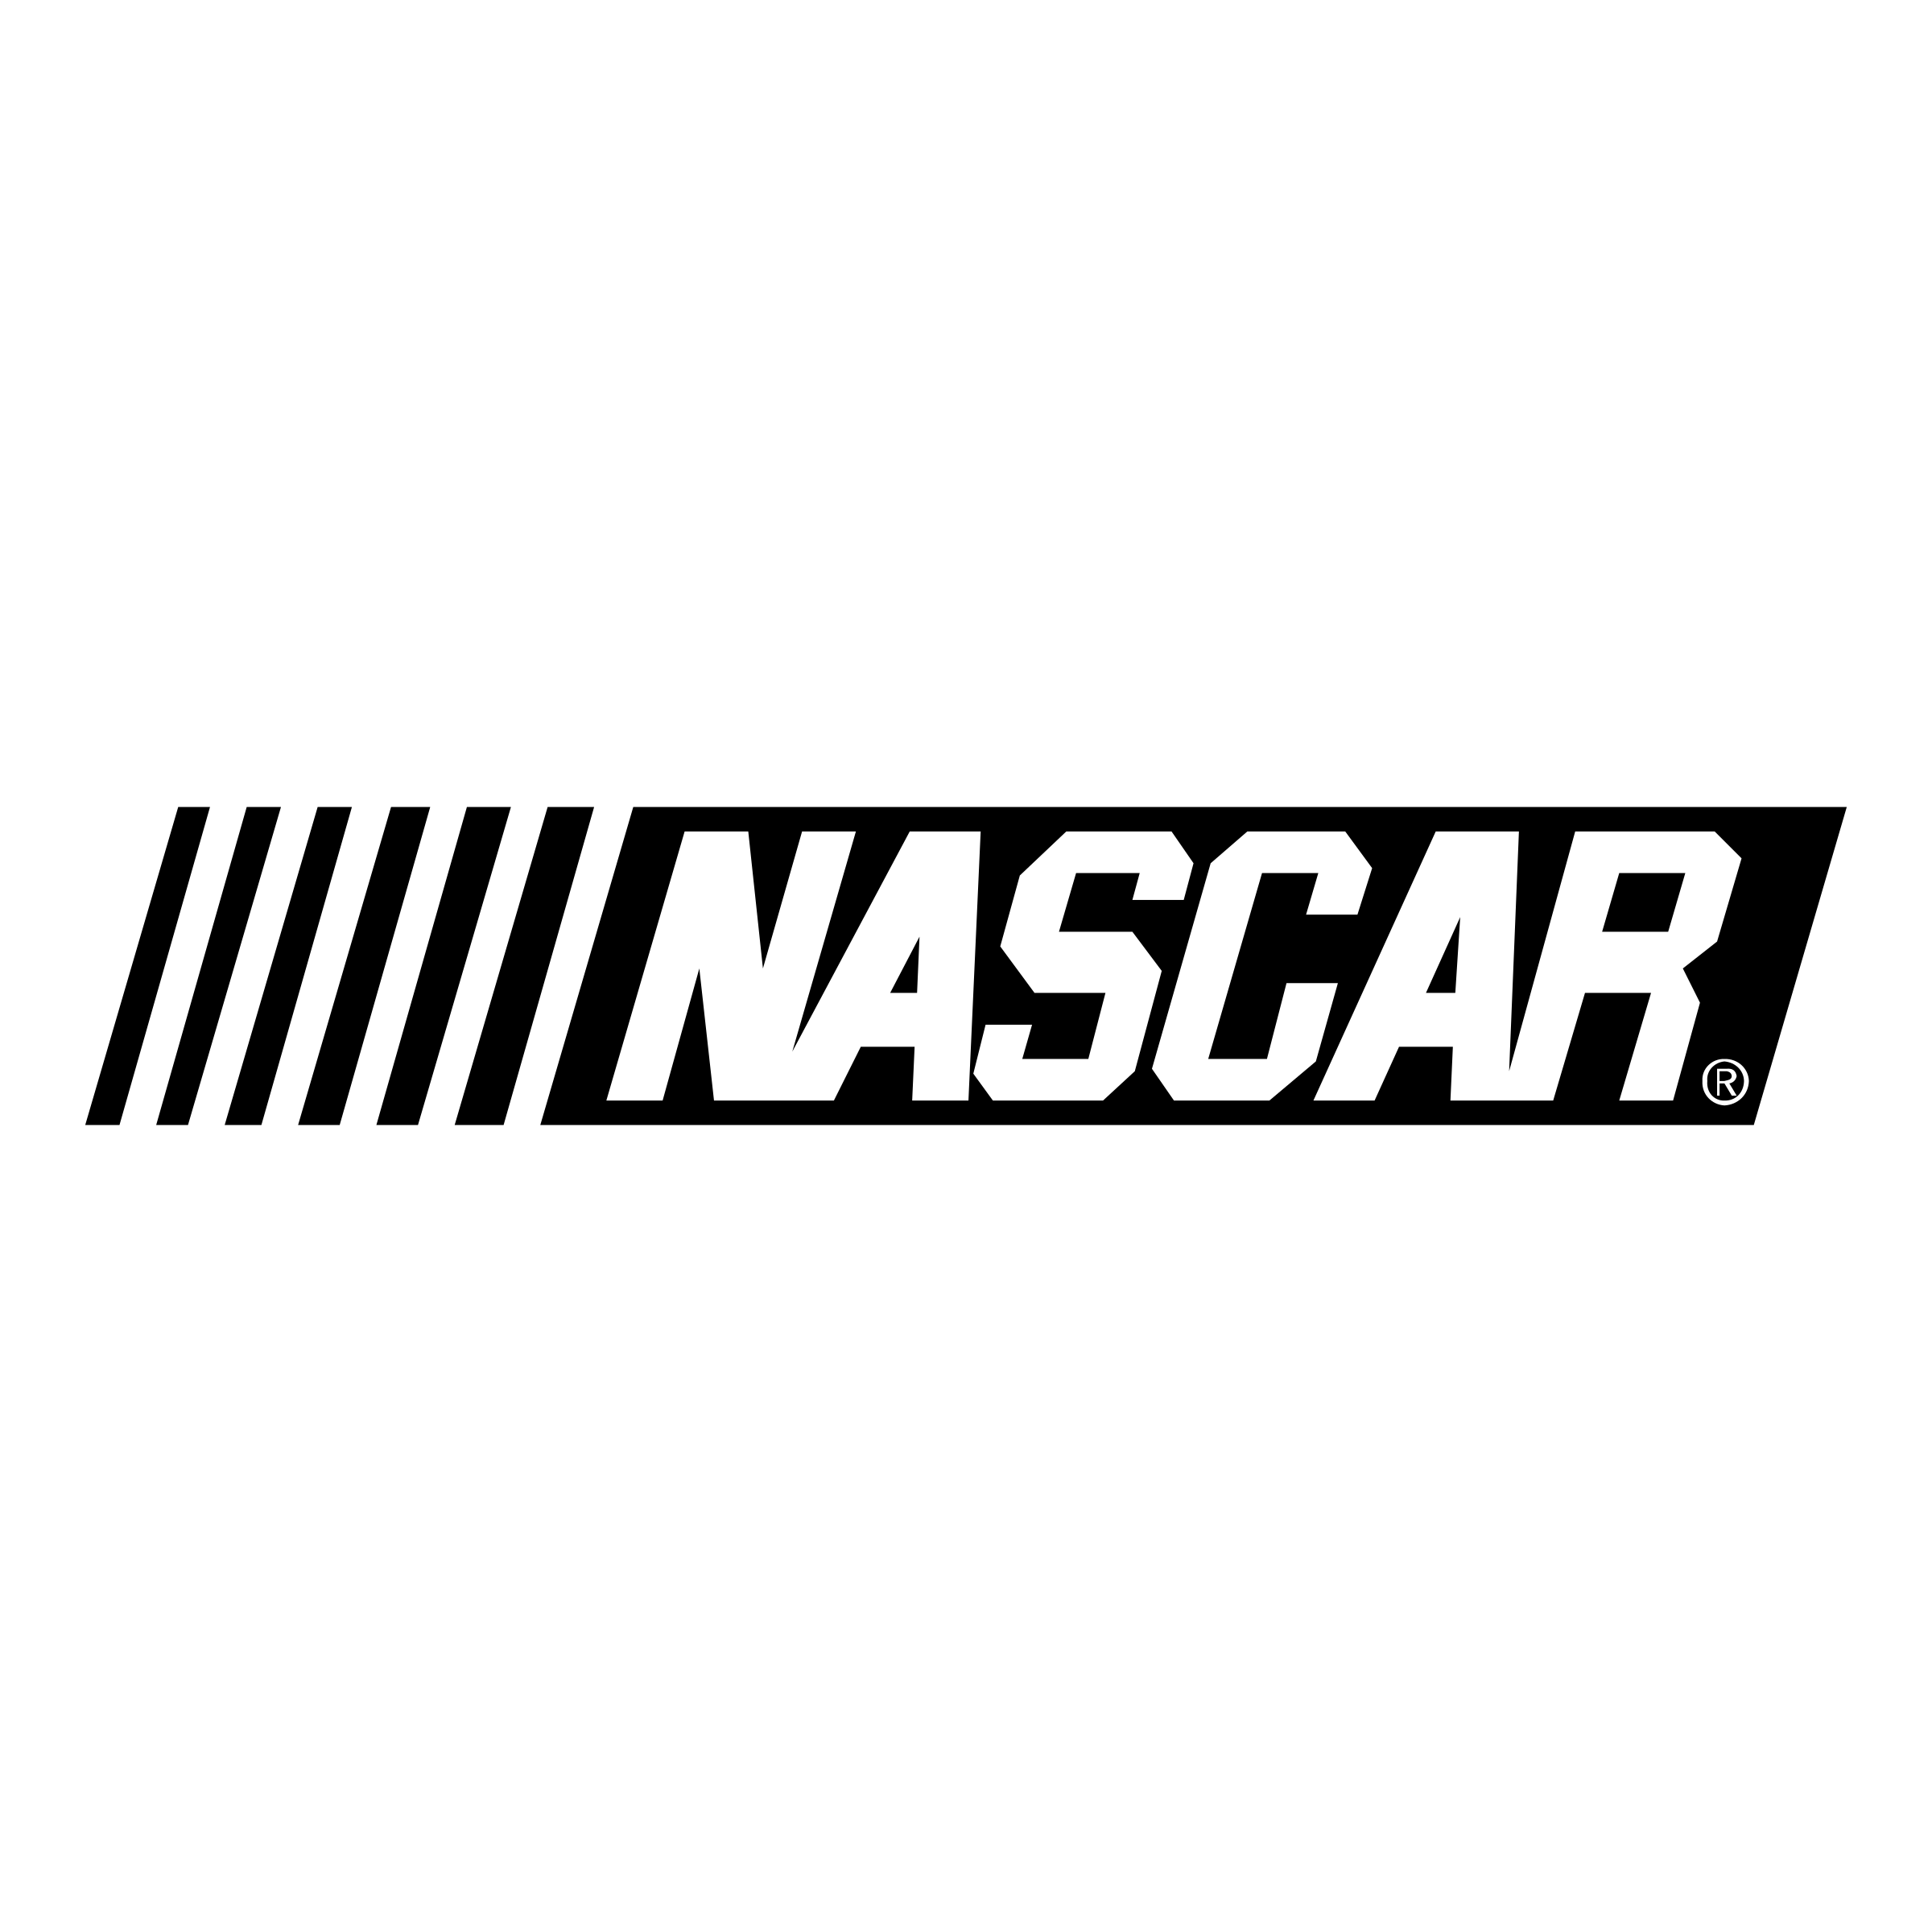 Nascar Logo PNG Transparent & SVG Vector.